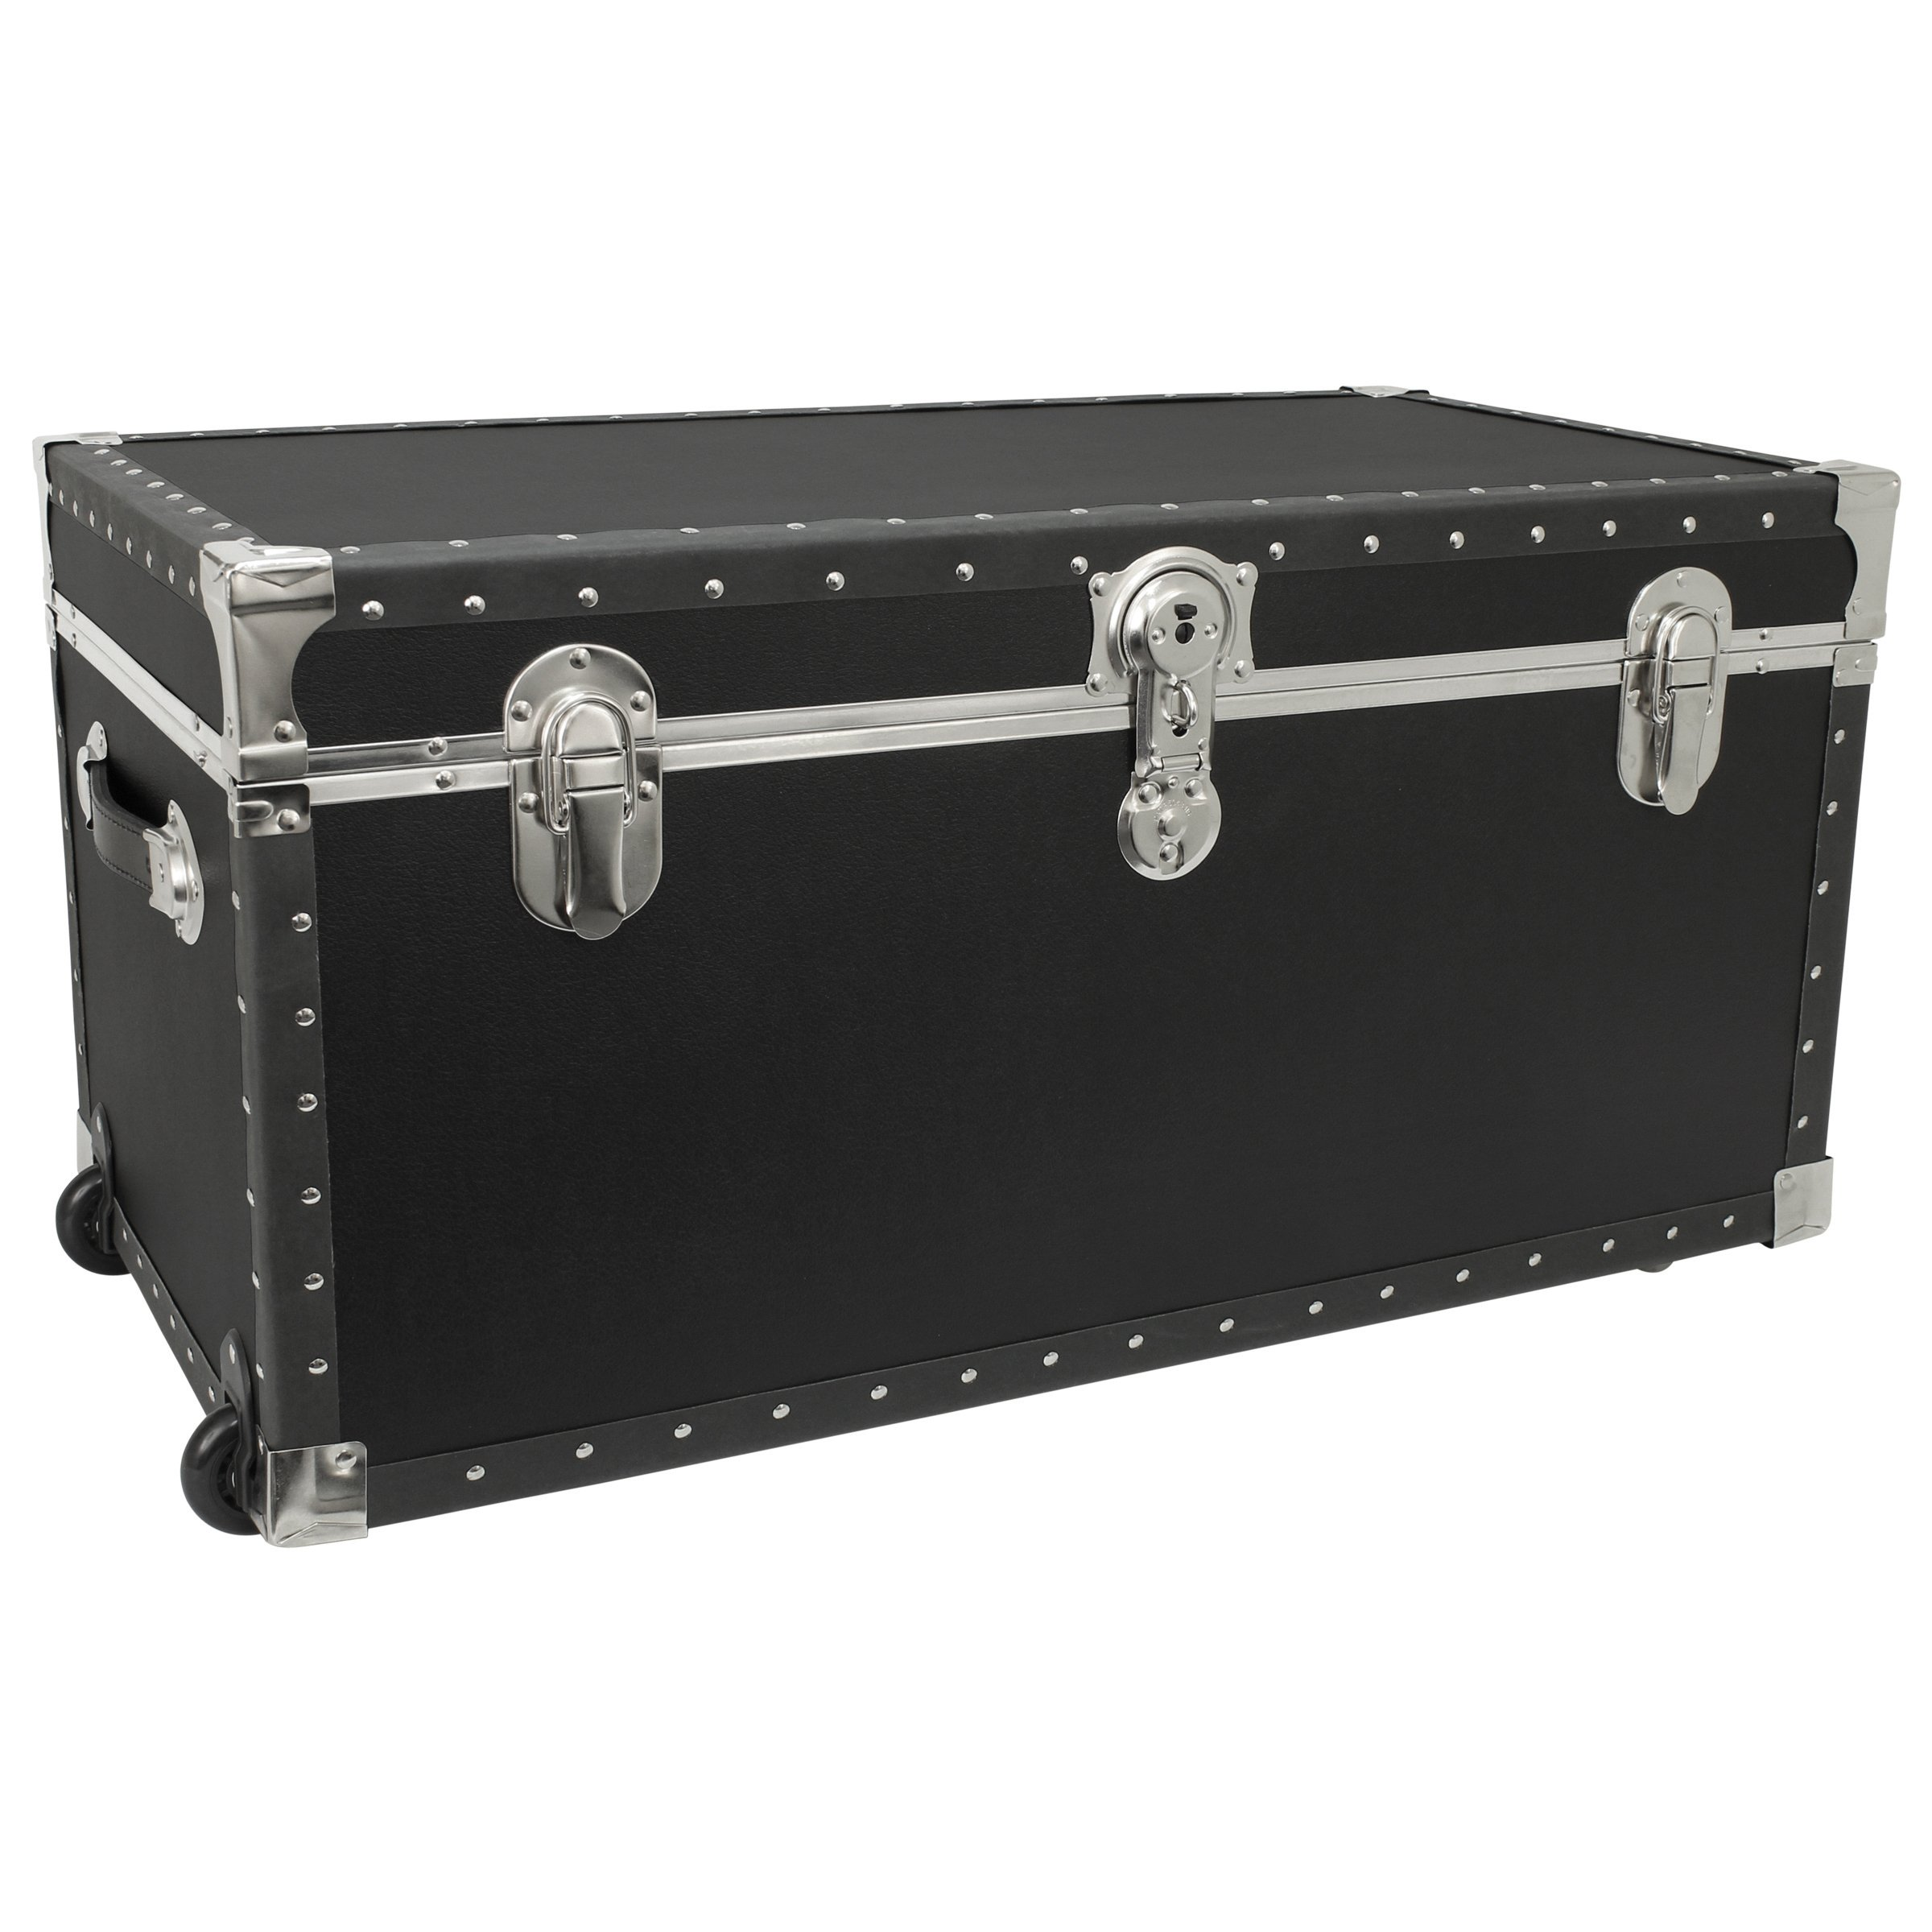 Seward Trunk Trailblazer Oversized Footlocker Trunk with Wheels, Black, 31-inch (SWD5231-11) by Seward Trunk